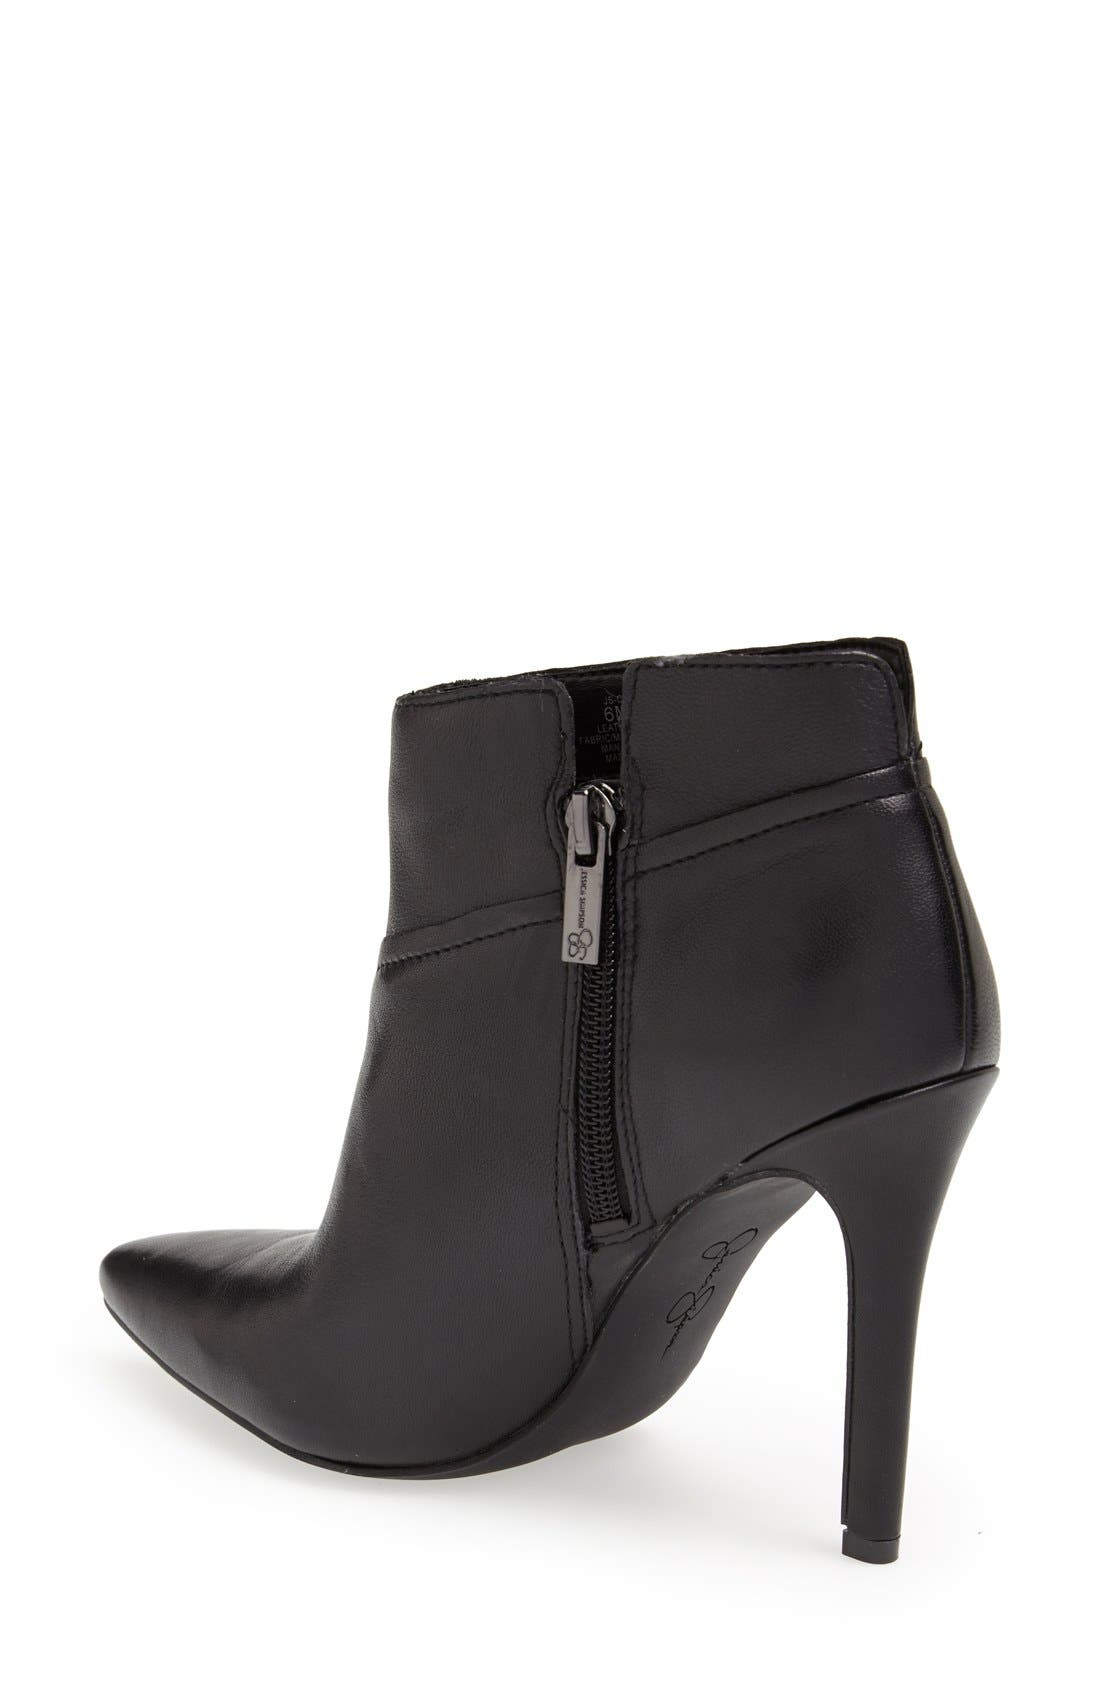 Alternate Image 2  - Jessica Simpson 'Coolen' Pointy Toe Bootie (Women)